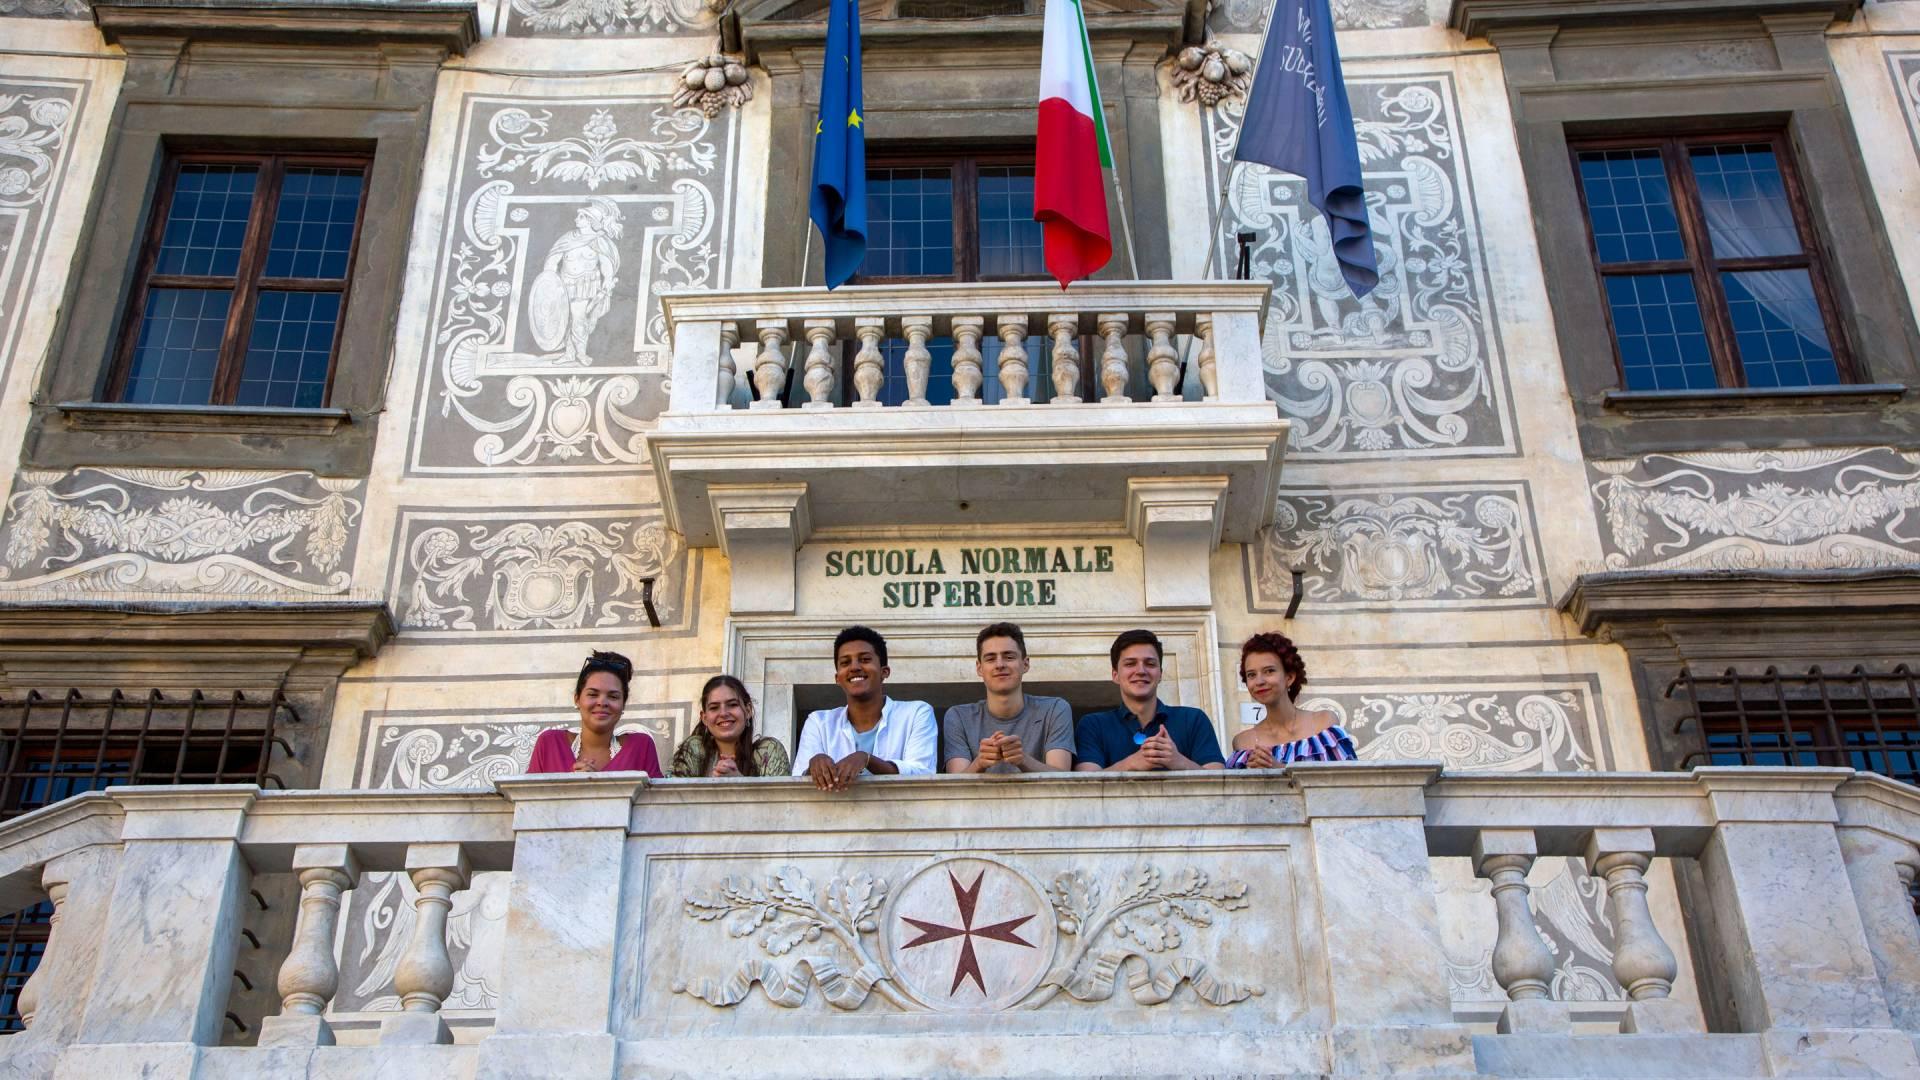 Students standing atop the steps of the Scuola Normale